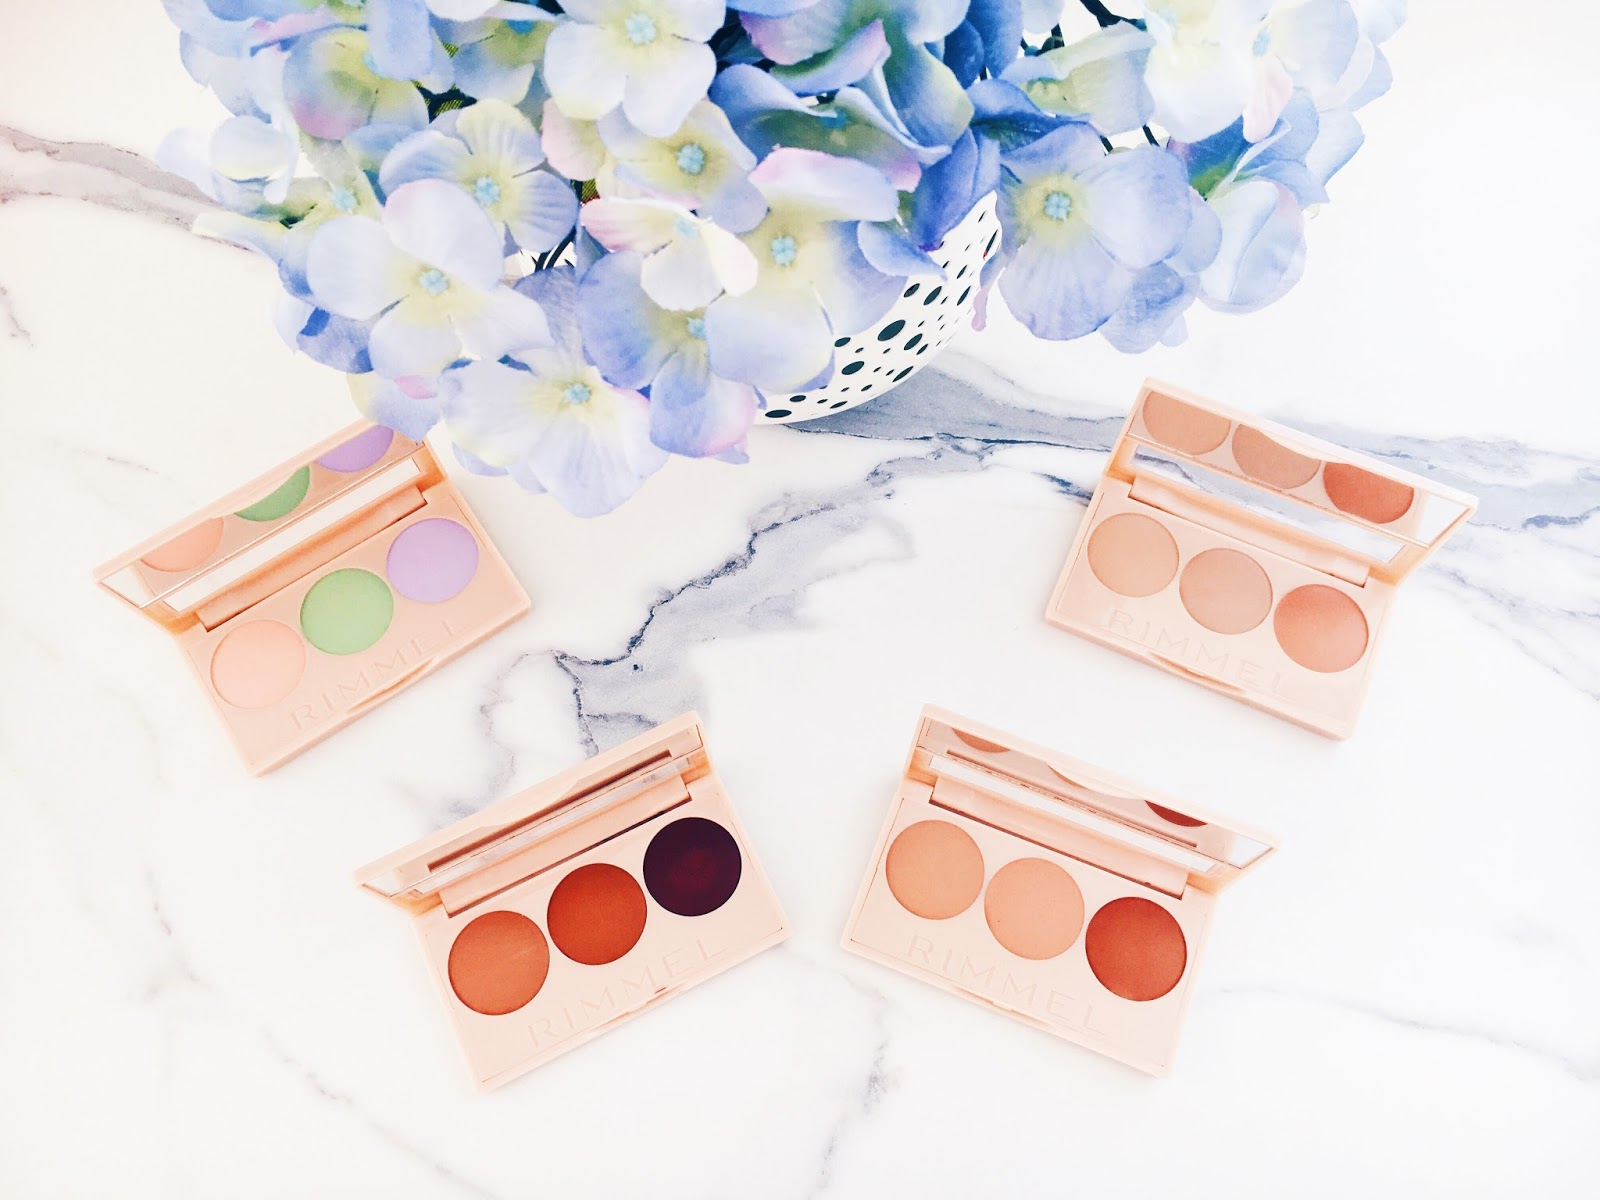 Rimmel London Insta Collection Conceal Contour Correct Palettes